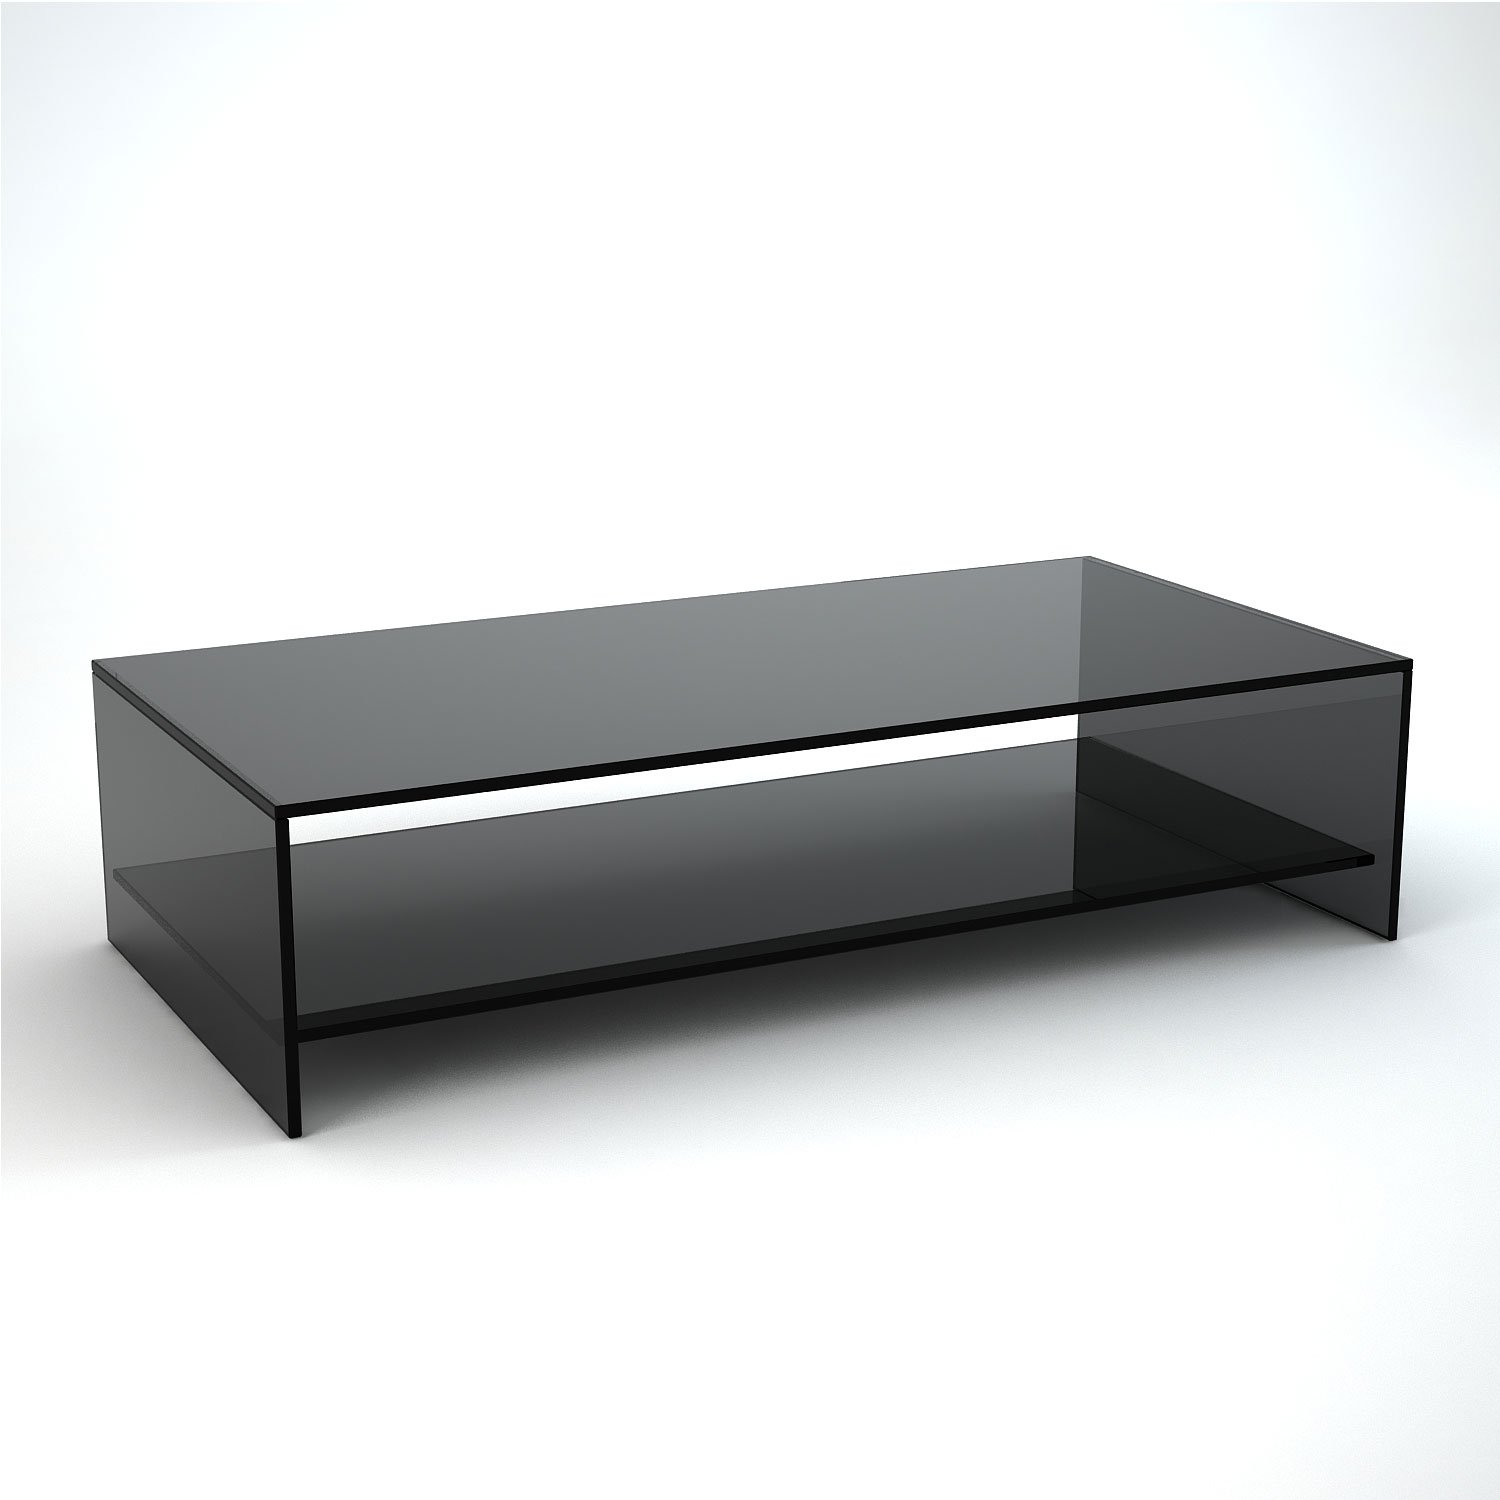 Judd rectangular smoked glass coffee table with shelf klarity glass furniture Coffee table with shelf